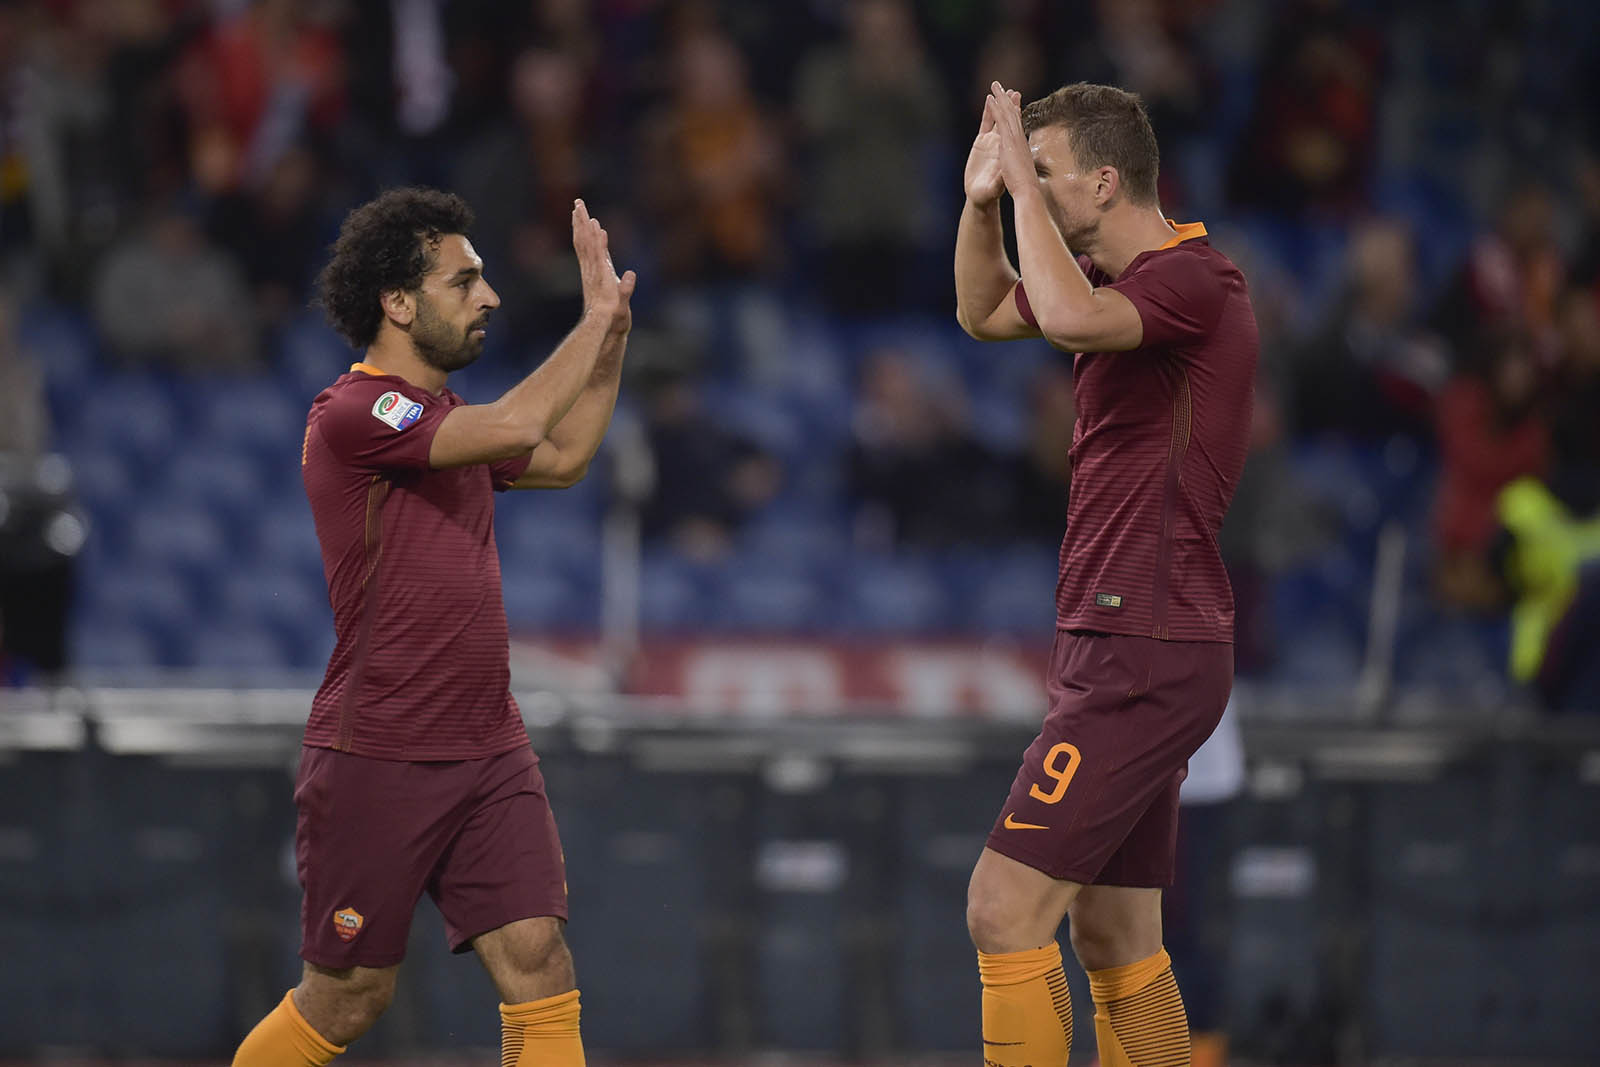 http://res.cloudinary.com/as-roma-turbine-production/image/upload/v1/asroma-uat/cvxayr4frdfvzzehvldu